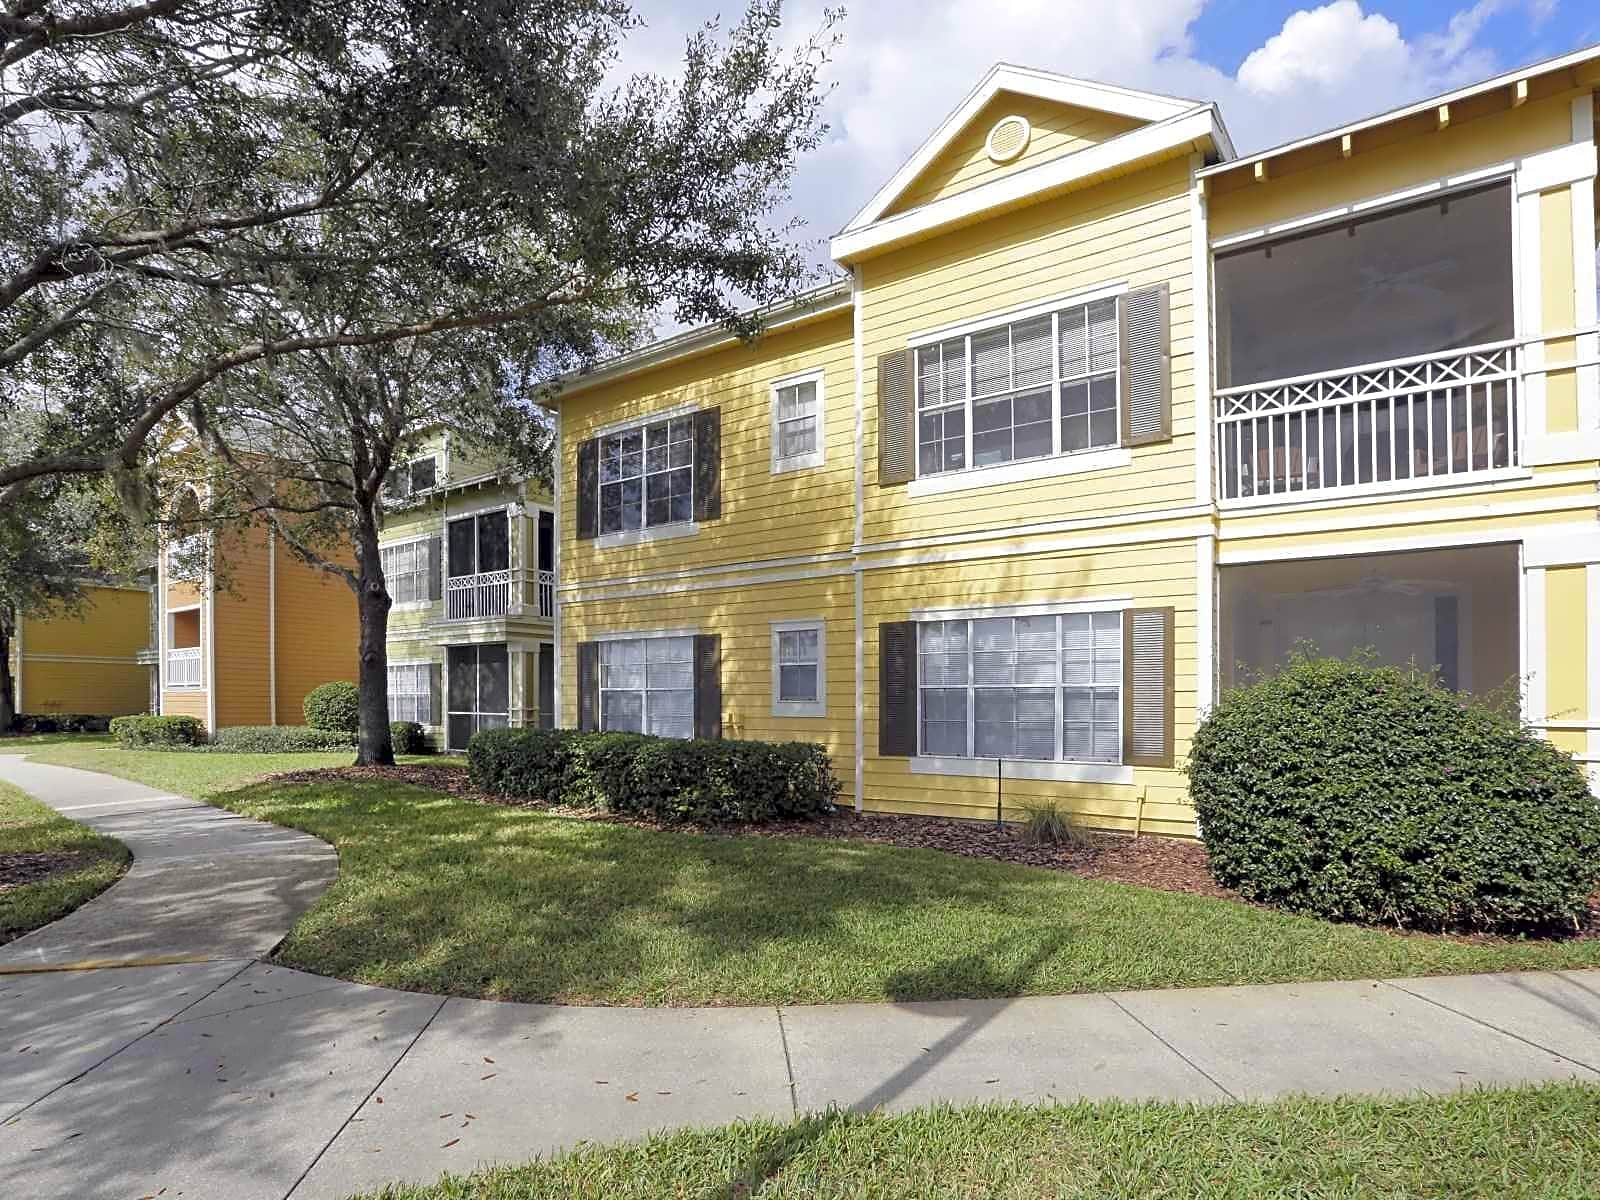 Photo: Orlando Apartment for Rent - $150.00 / month; 2 Bd & 2 Ba